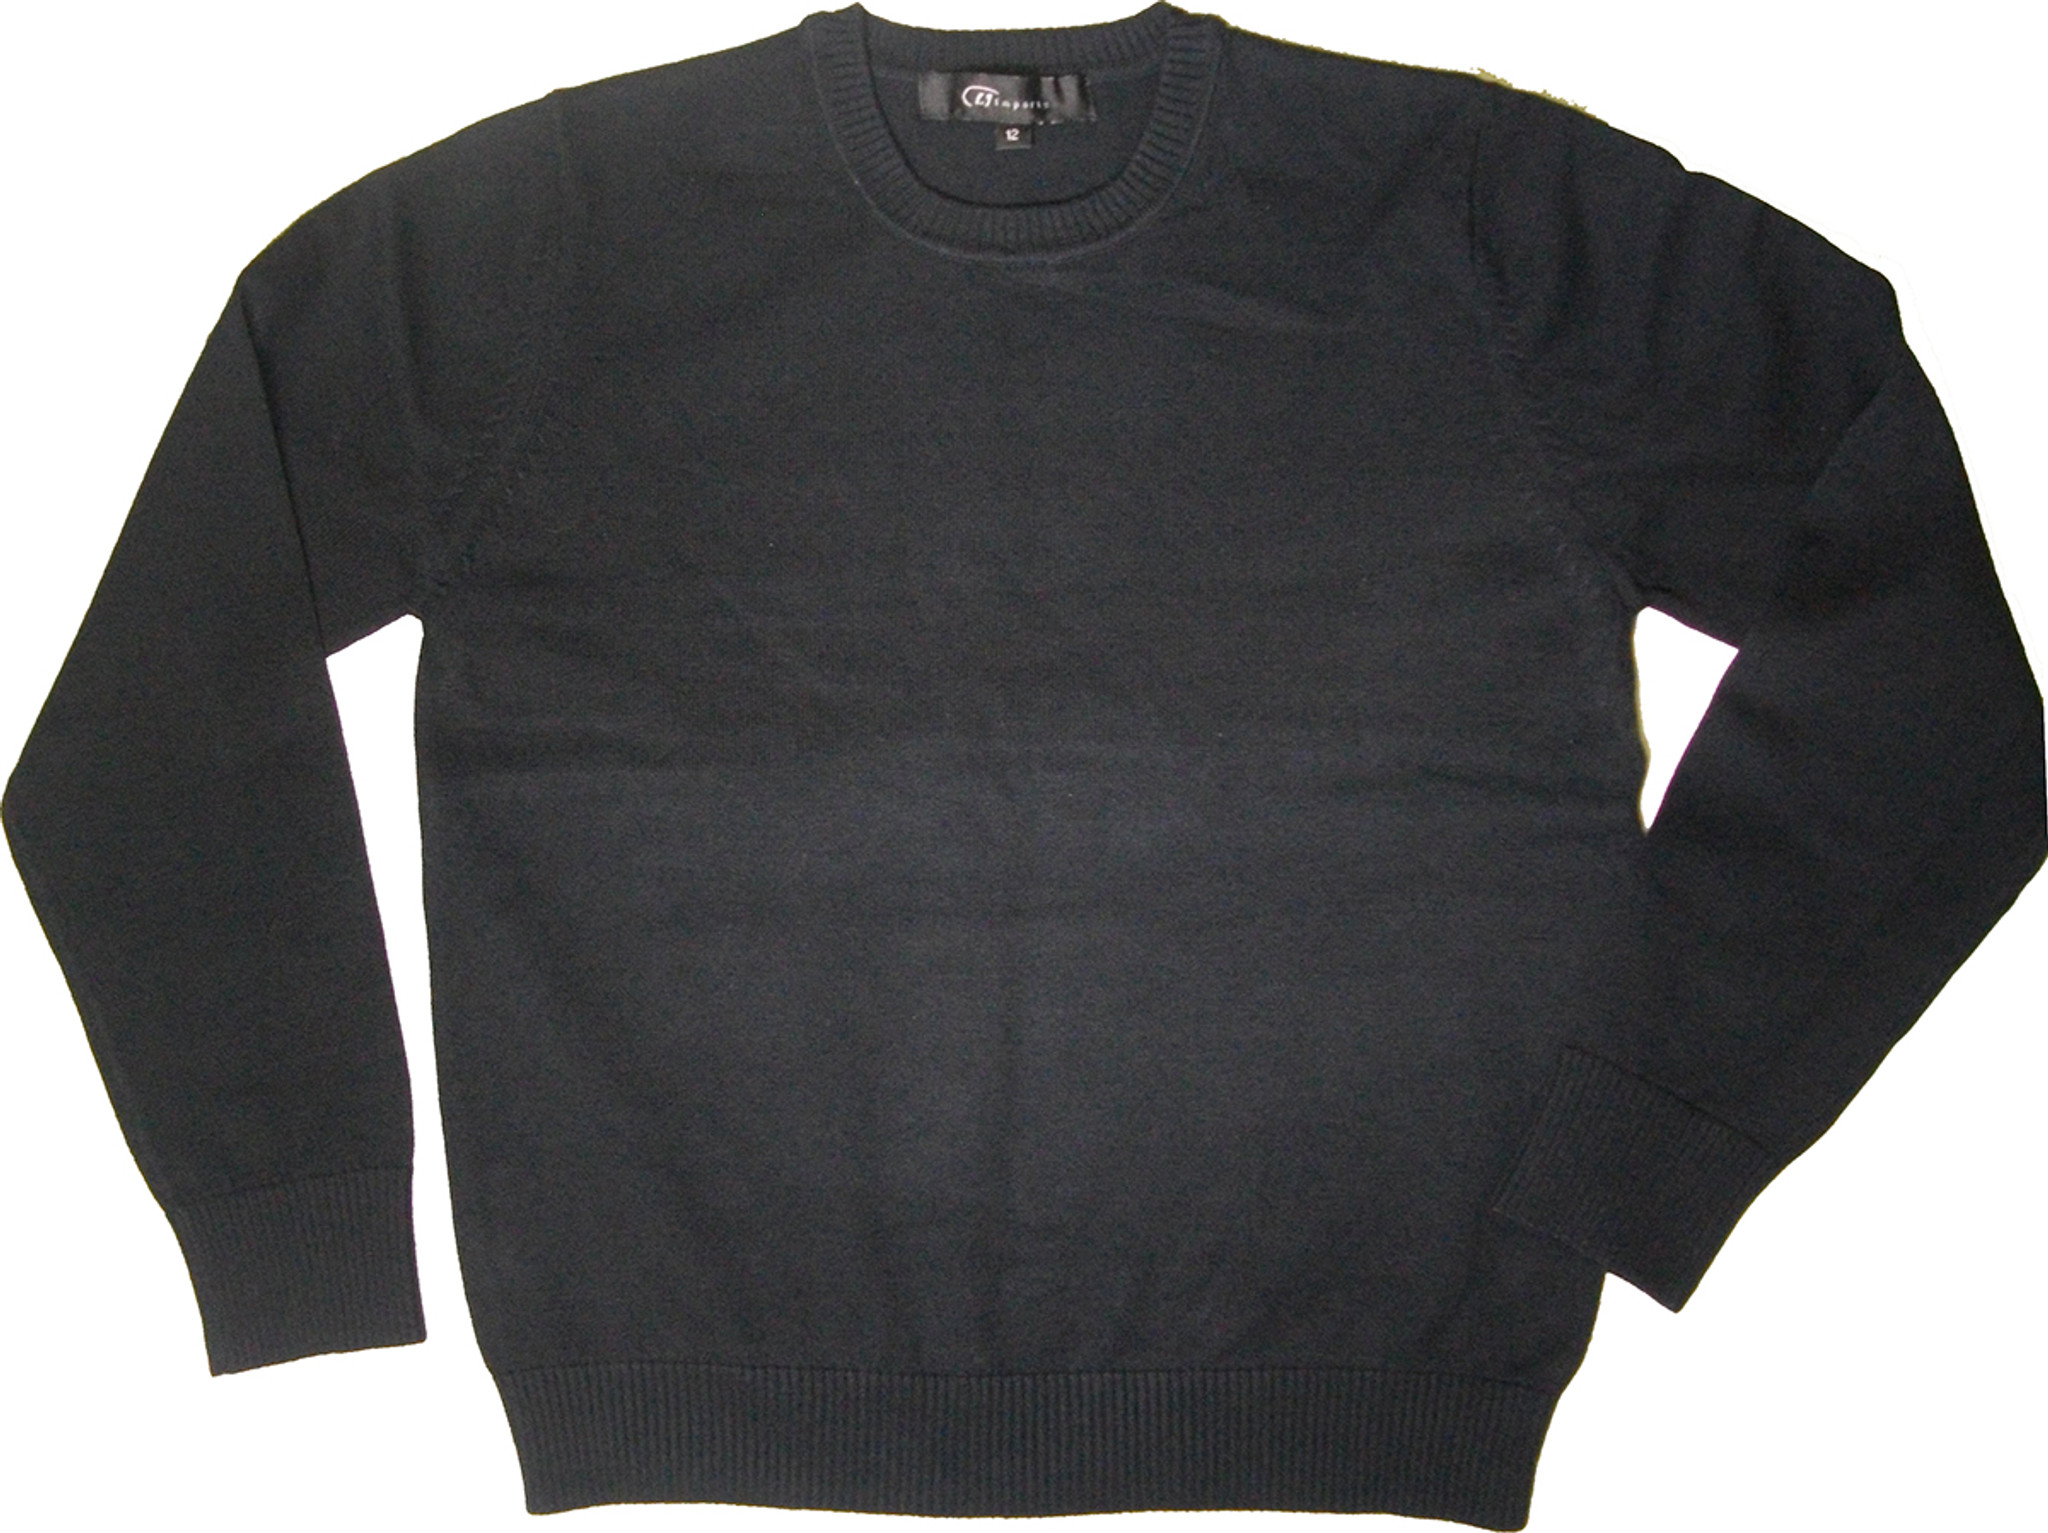 LJ Imports Crew Neck Sweater - 100% Cotton - Engelic Uniforms ce8a78f48